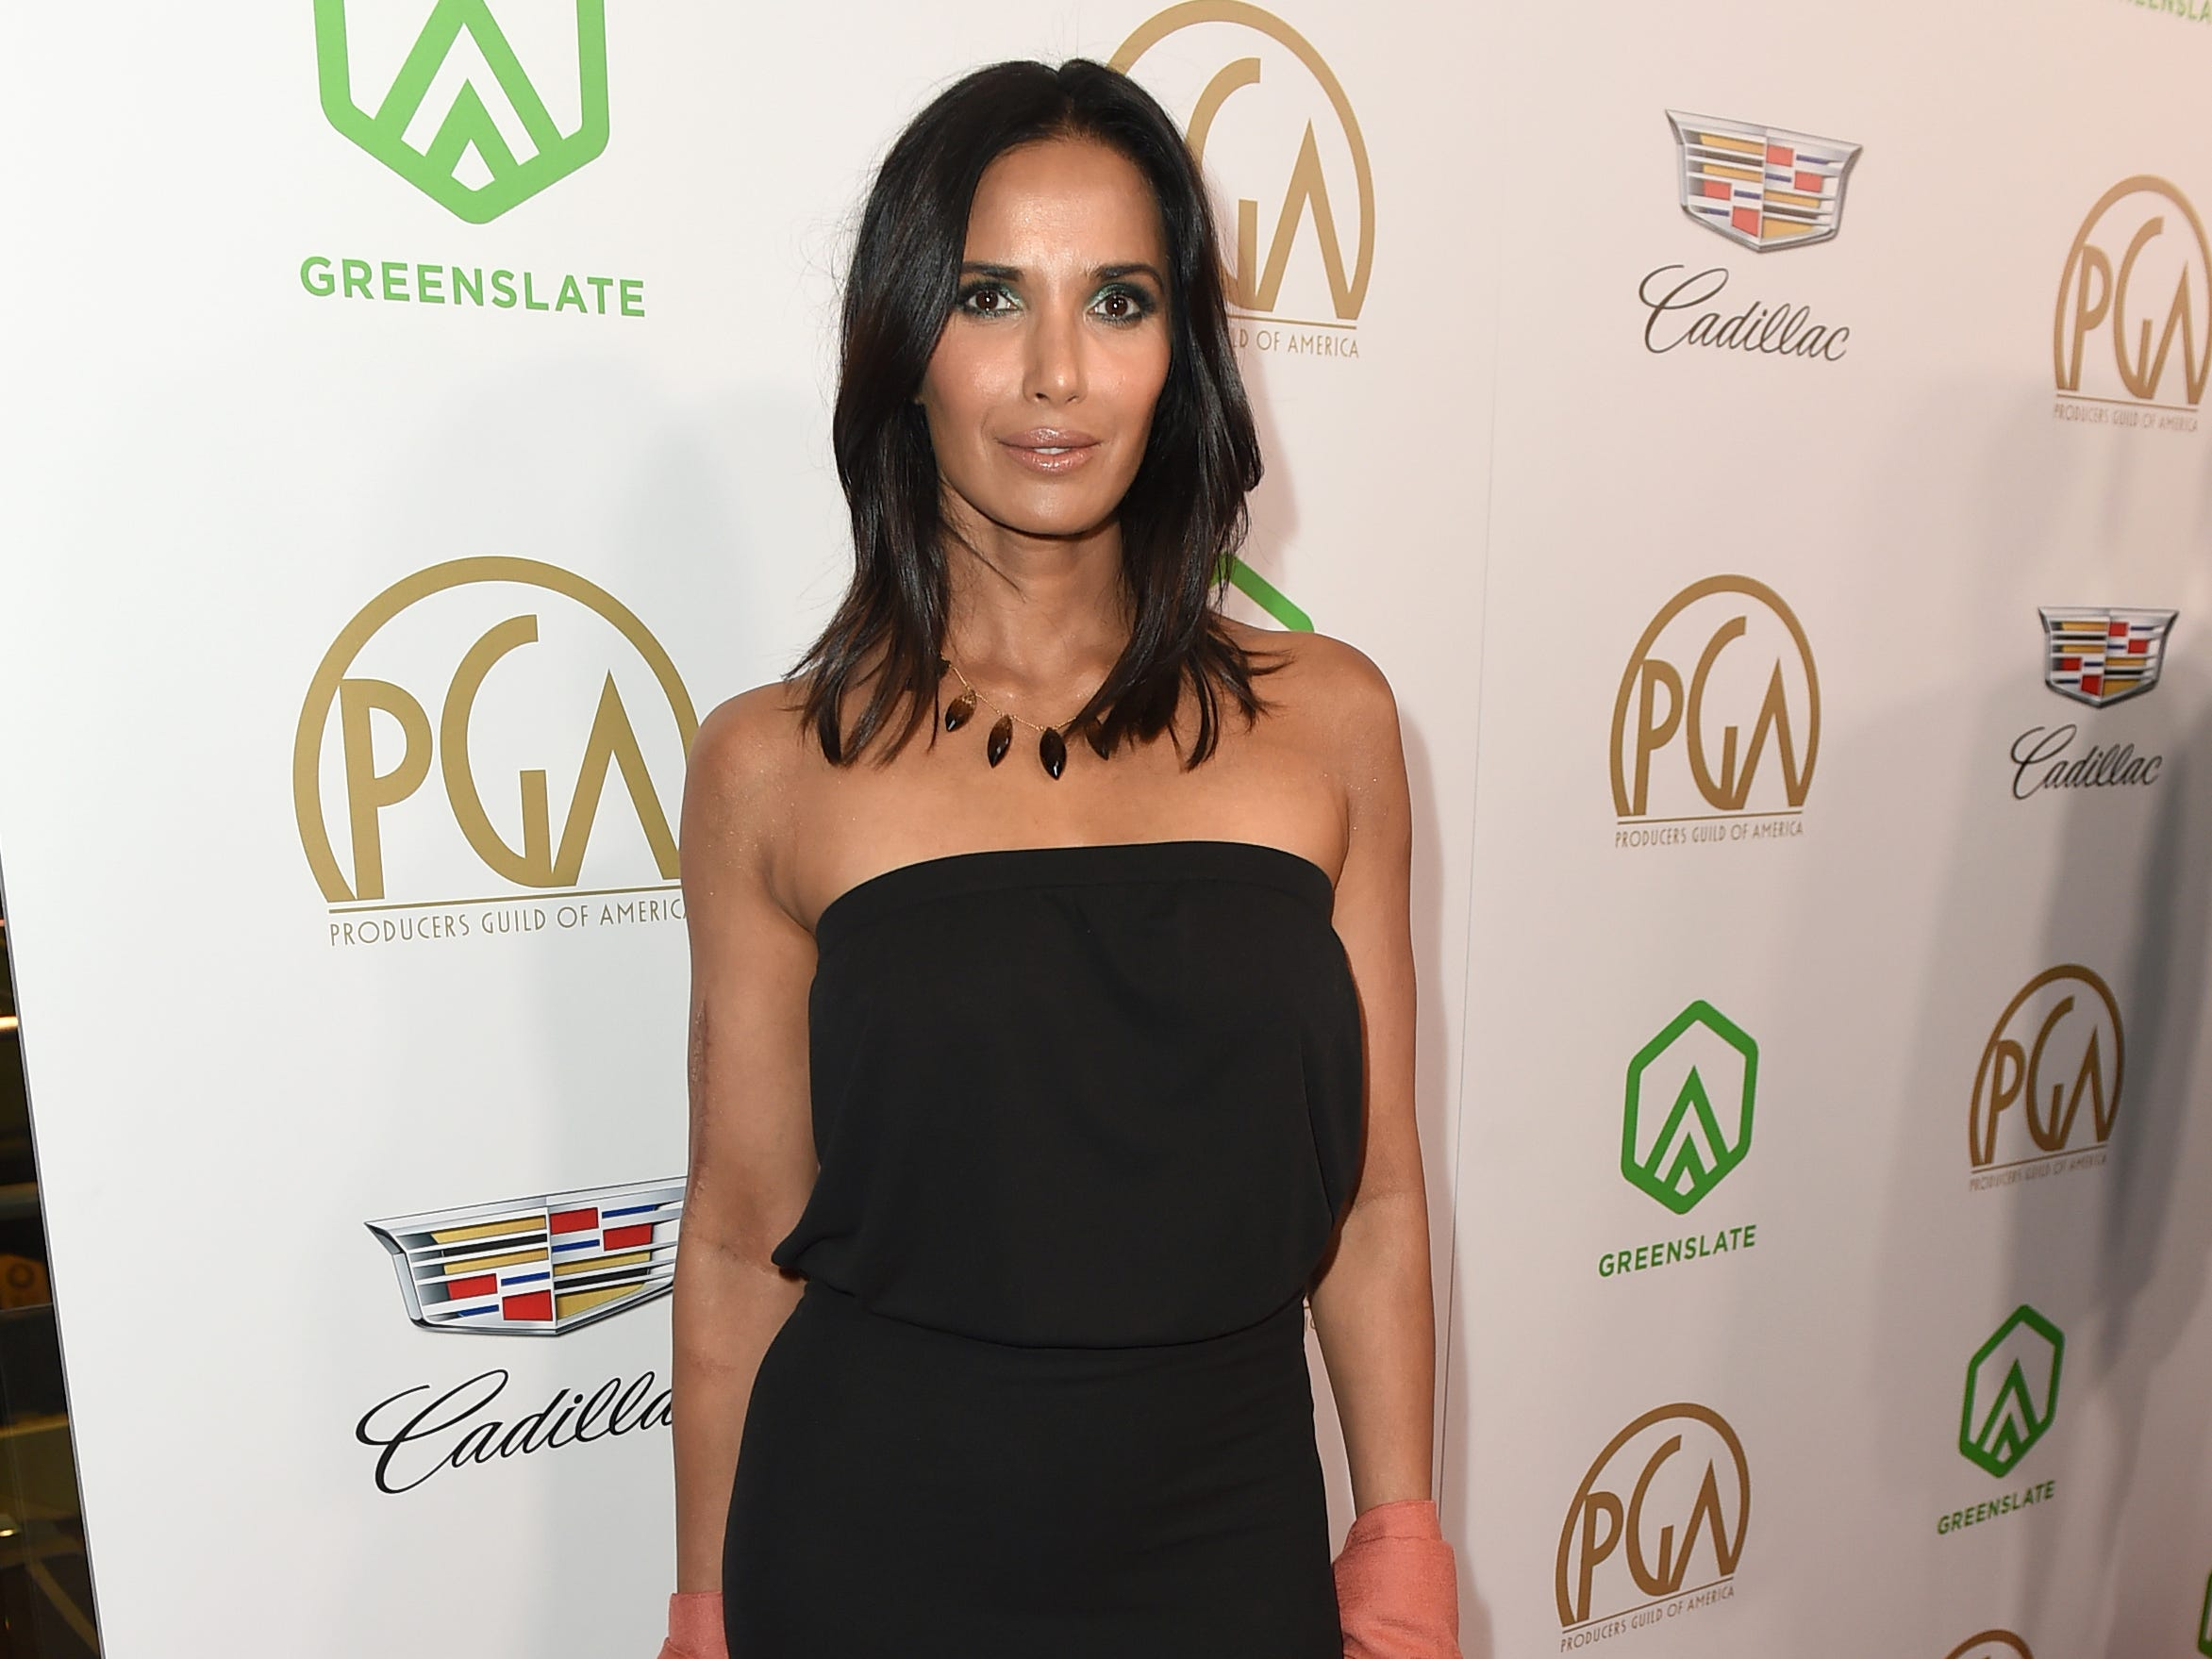 IMAGE DISTRIBUTED FOR PRODUCERS GUILD OF AMERICA - Padma Lakshmi arrives at the 30th Producers Guild Awards presented by Cadillac at the Beverly Hilton on Saturday, Jan. 19, 2019, in Beverly Hills, Calif. (Photo by Jordan Strauss/Invision for Producers Guild of America/AP Images) ORG XMIT: CALB106